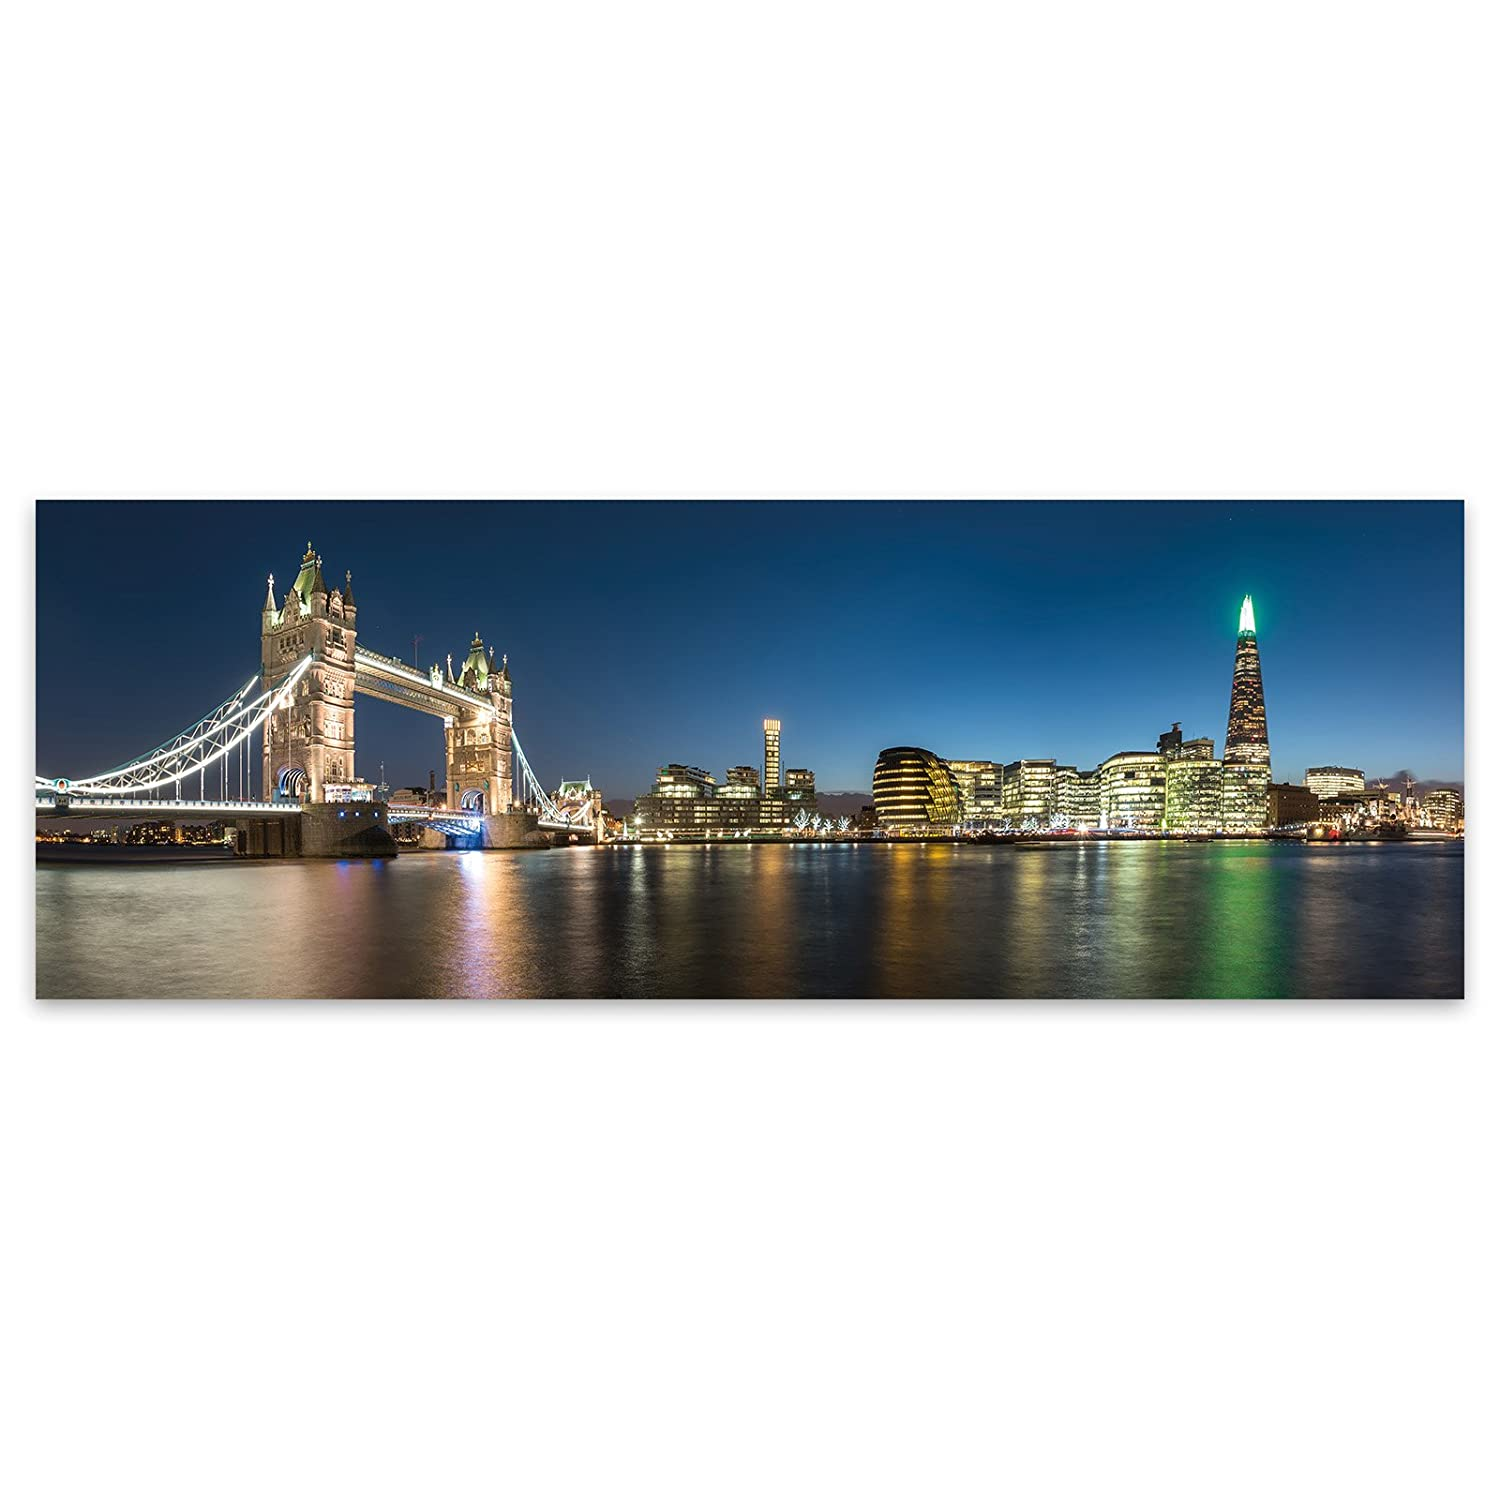 London Tower Bridge Stylish City Acrylic Glass Wall Art -120cm x 42cm LagunaProject